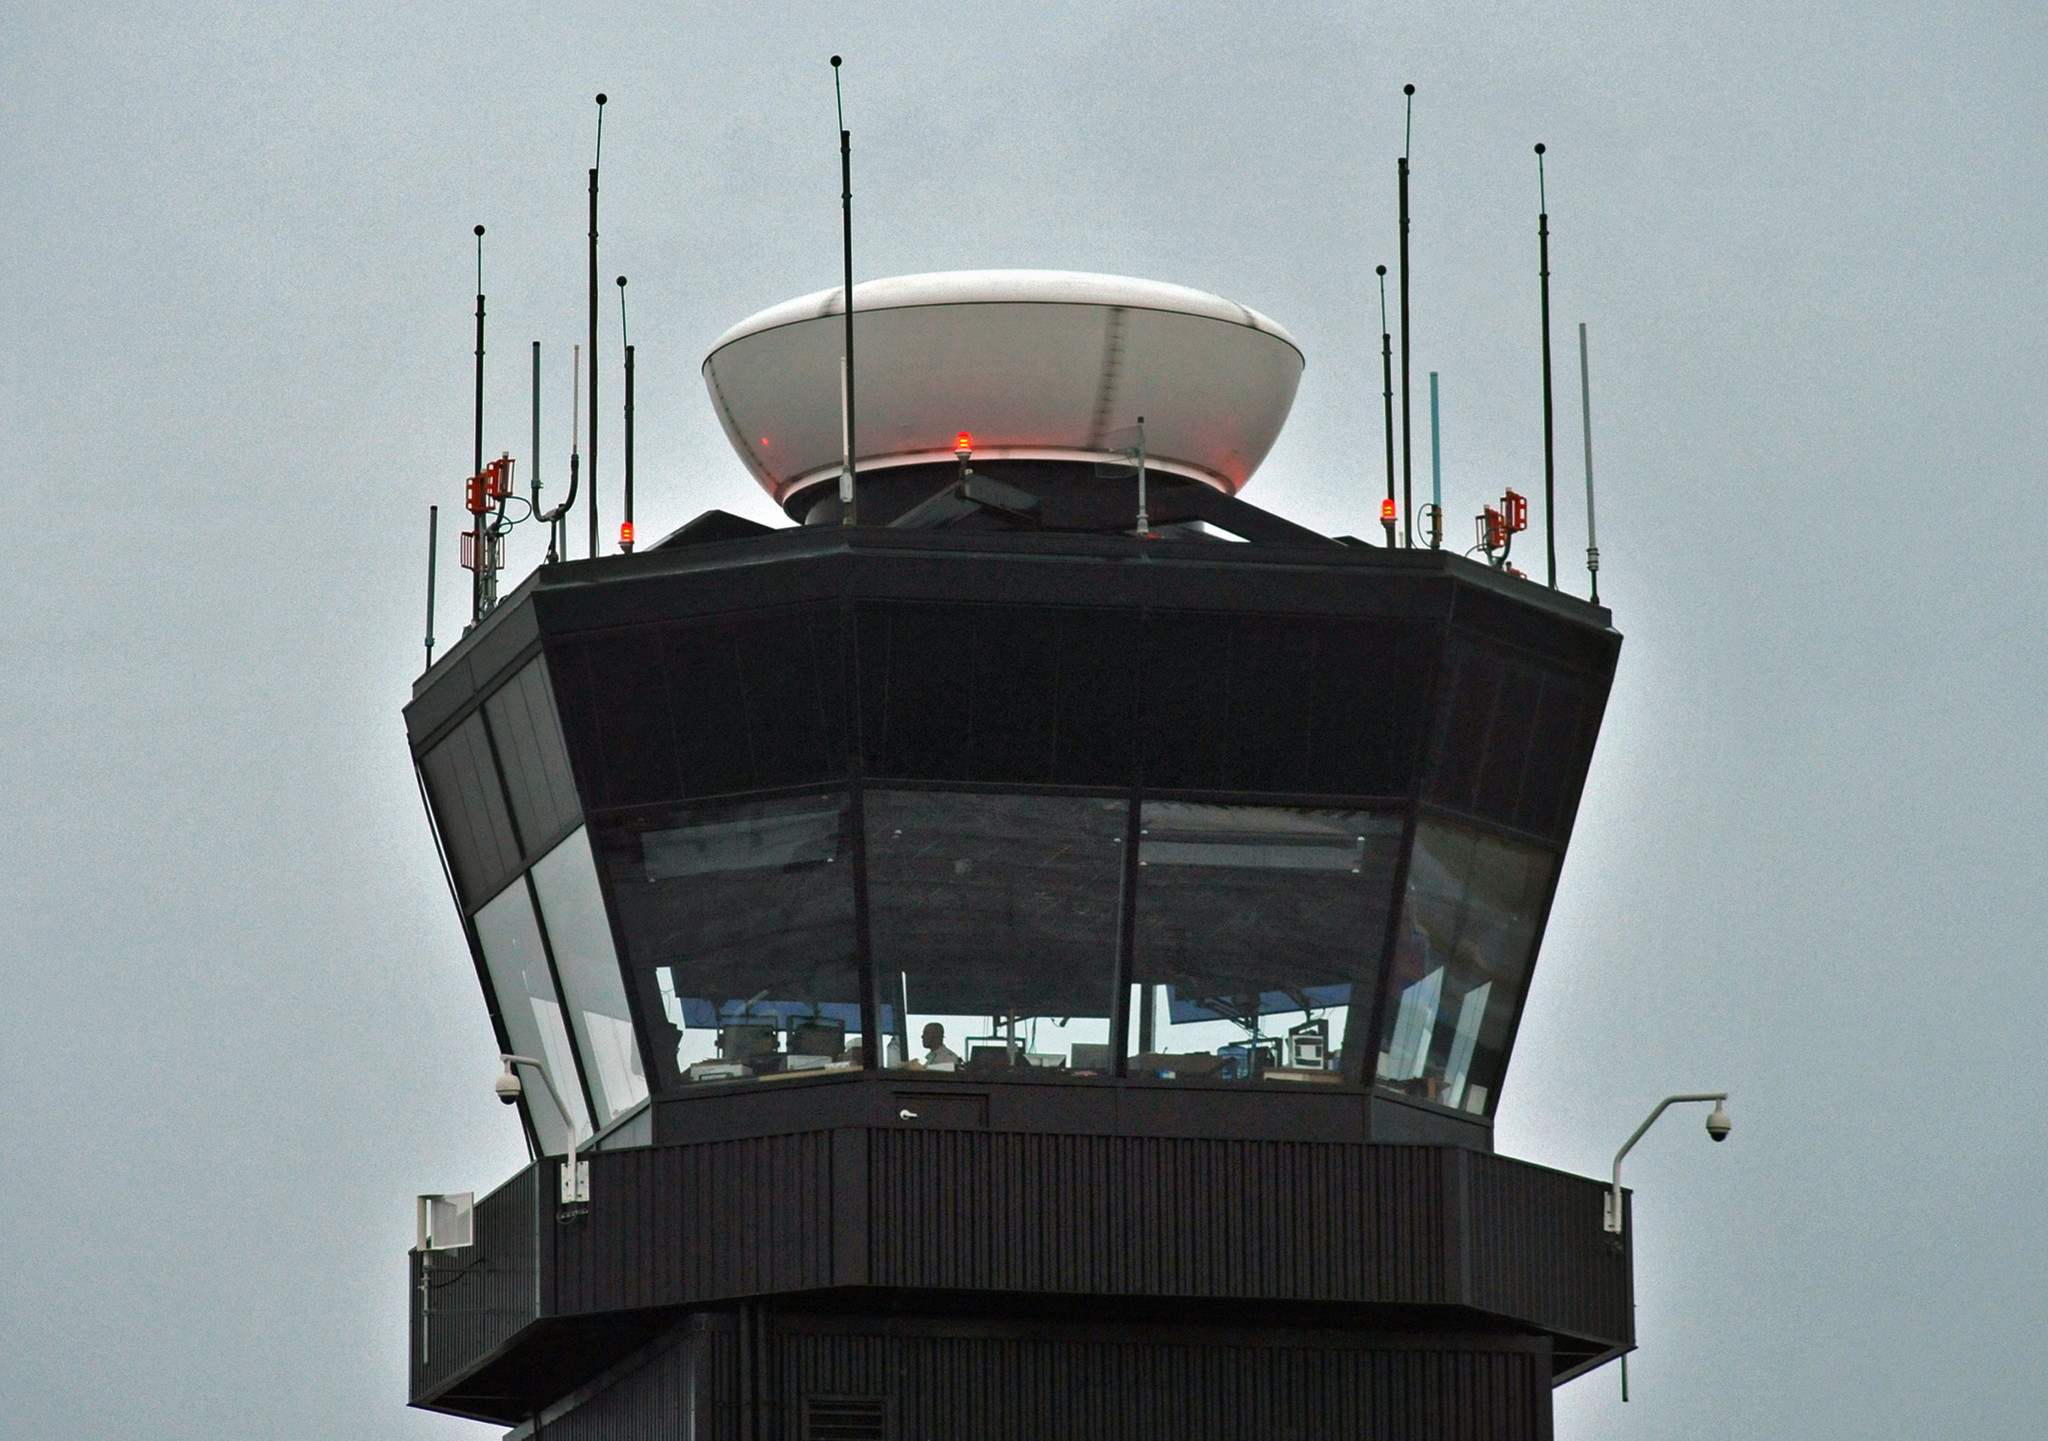 flights resume after bwi airport control tower evacuated